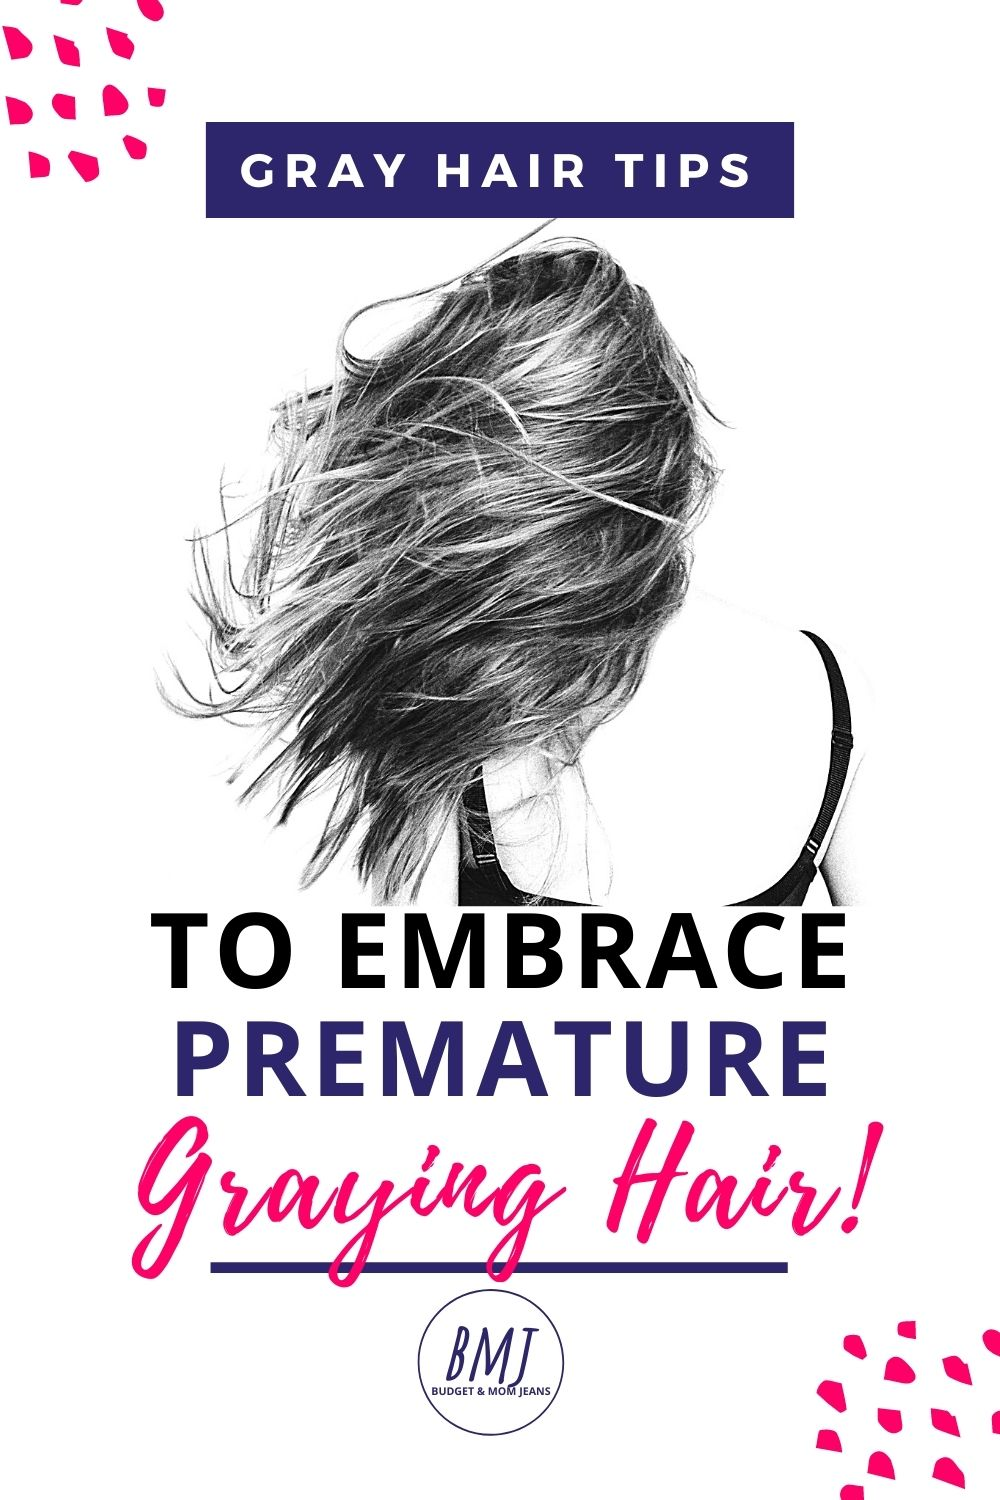 Premature Gray Hair: Not A Death Sentence | How To Embrace It